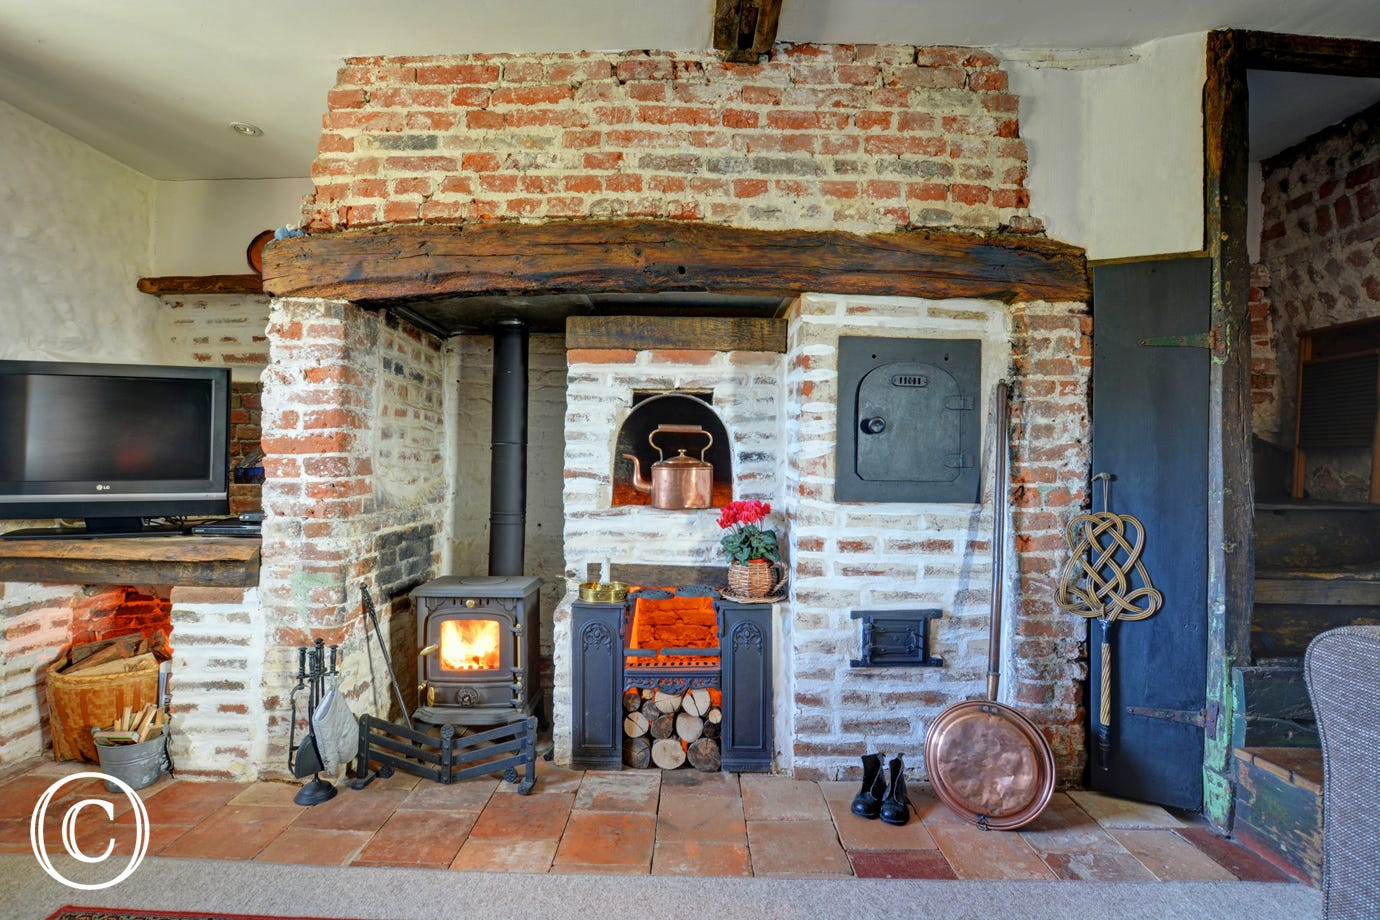 View of large inglenook fireplace with pot-bellied stove and ornamental baker's oven